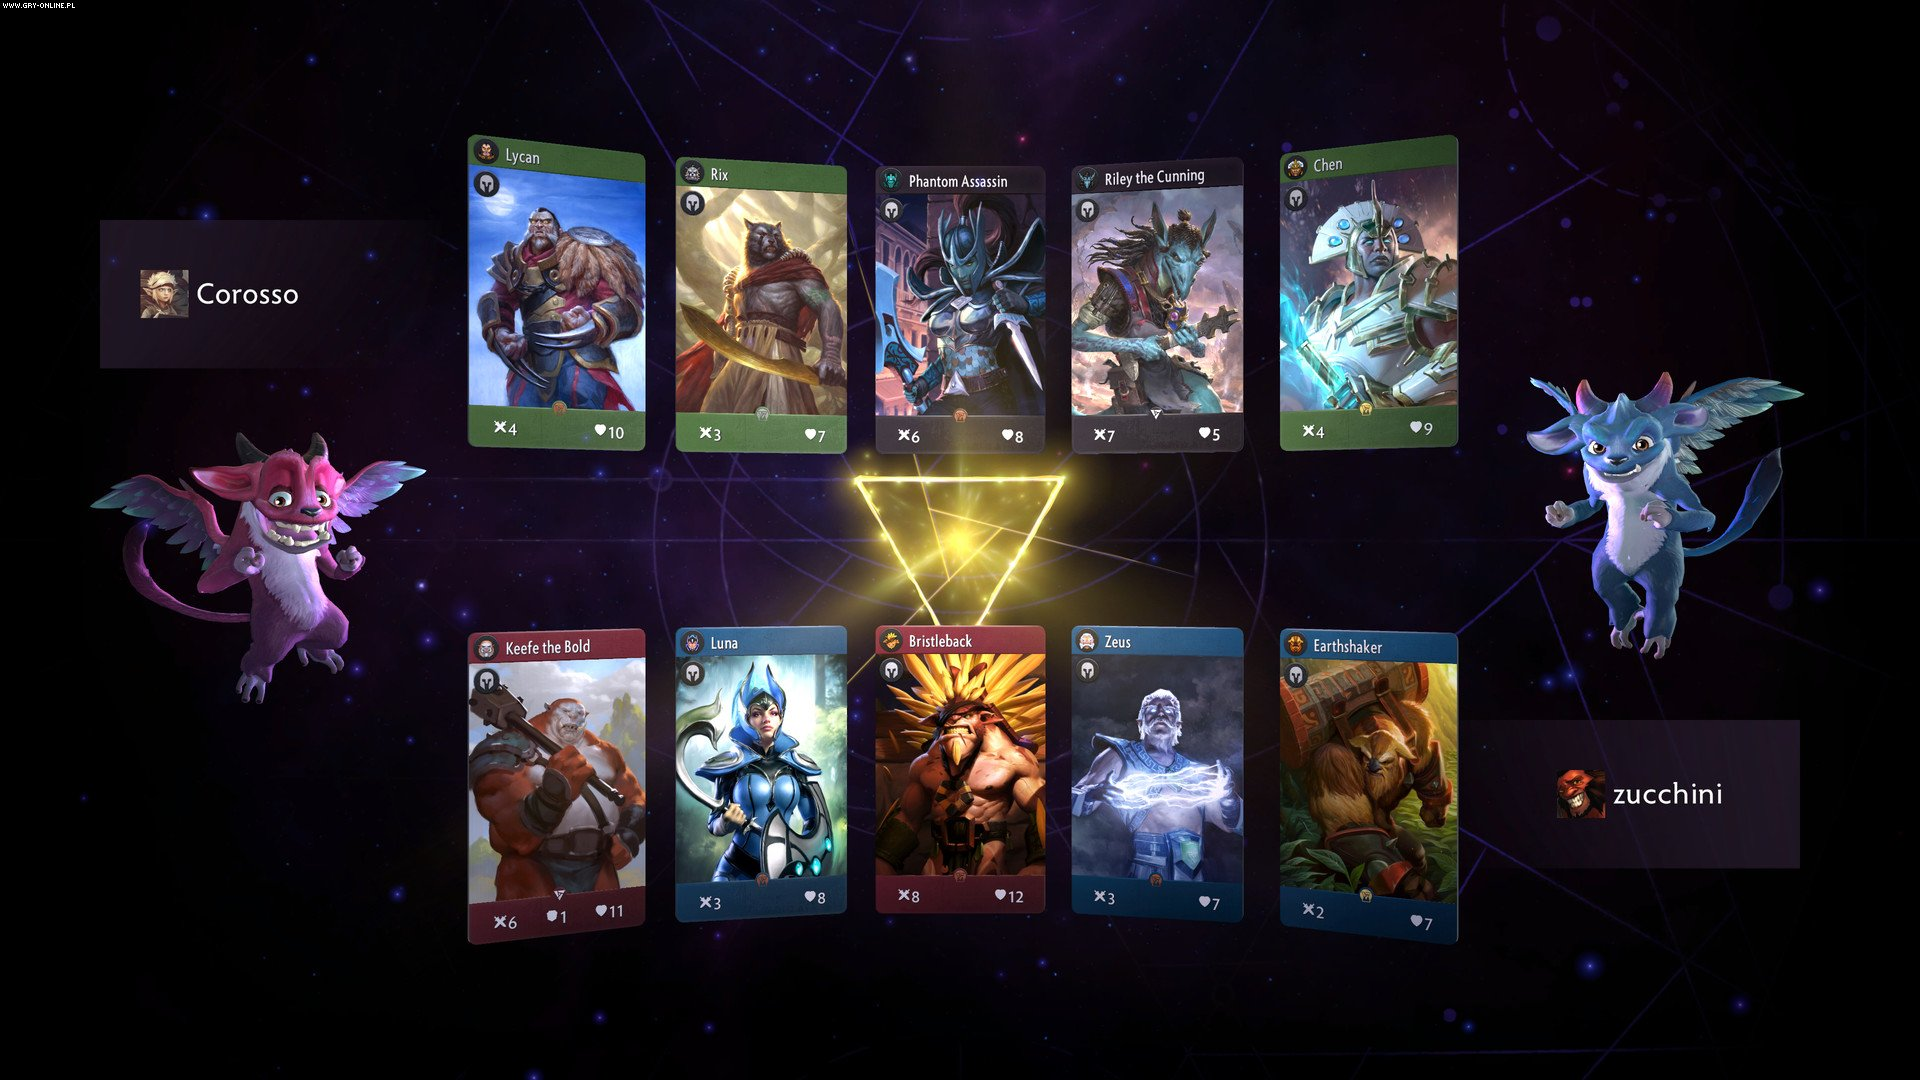 Artifact PC, AND, iOS Games Image 2/9, Valve Corporation